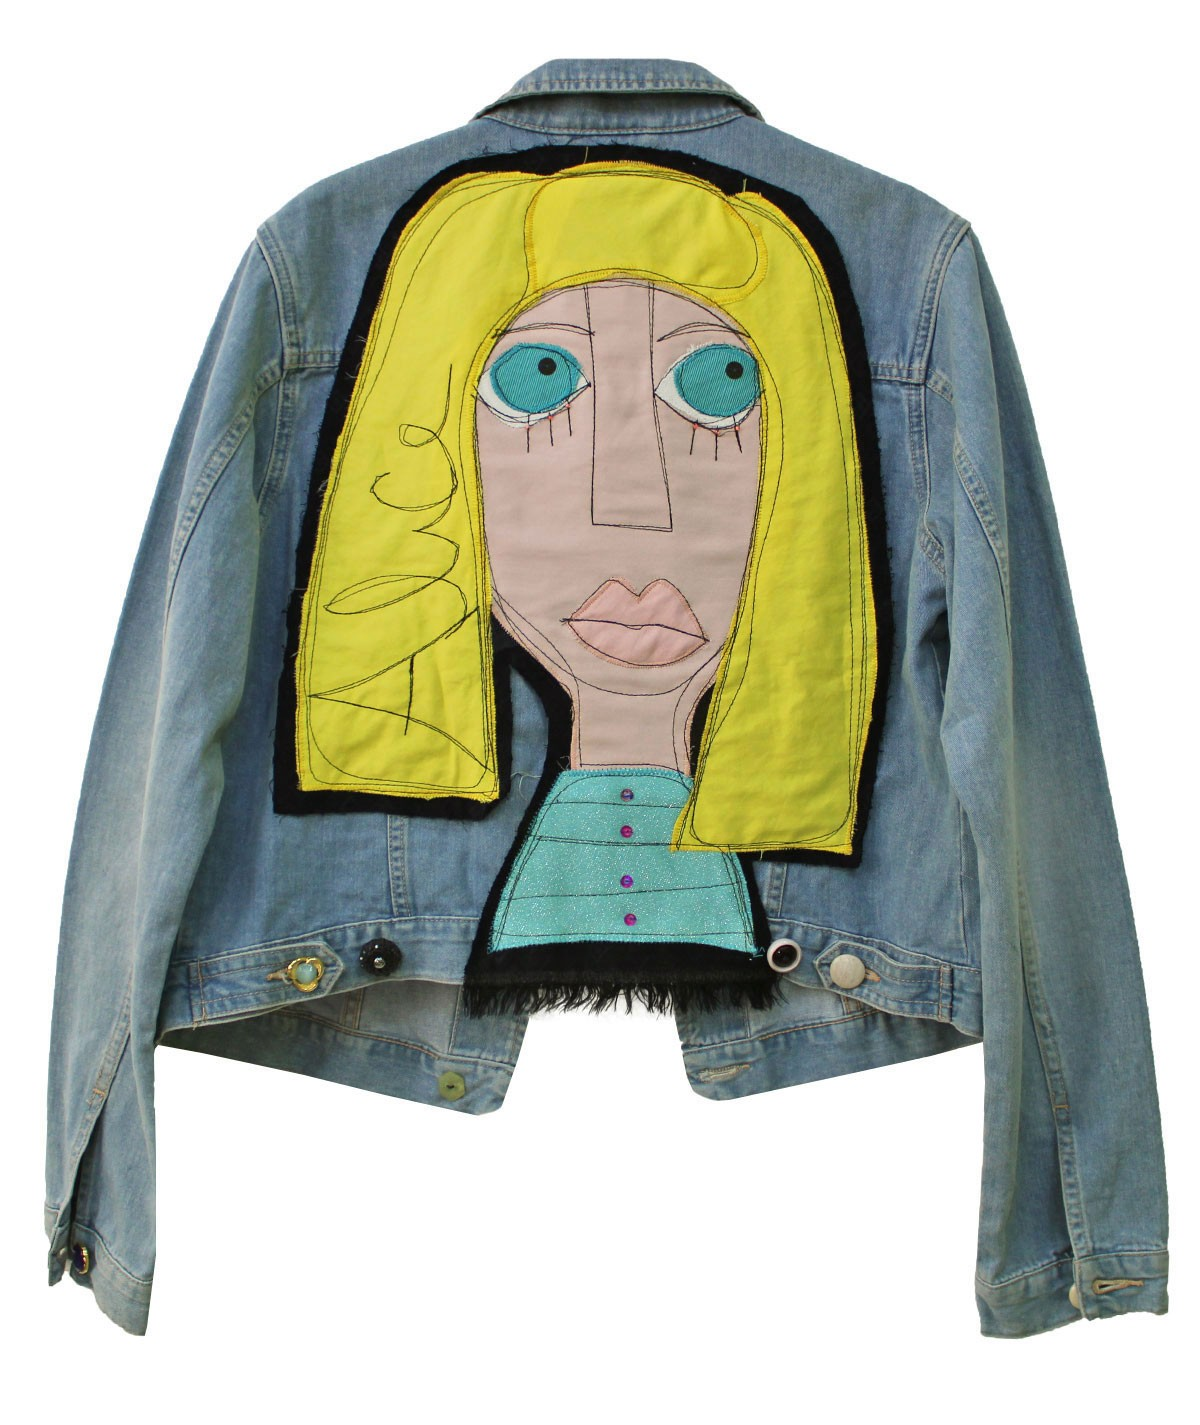 Alice jacket - unique piece